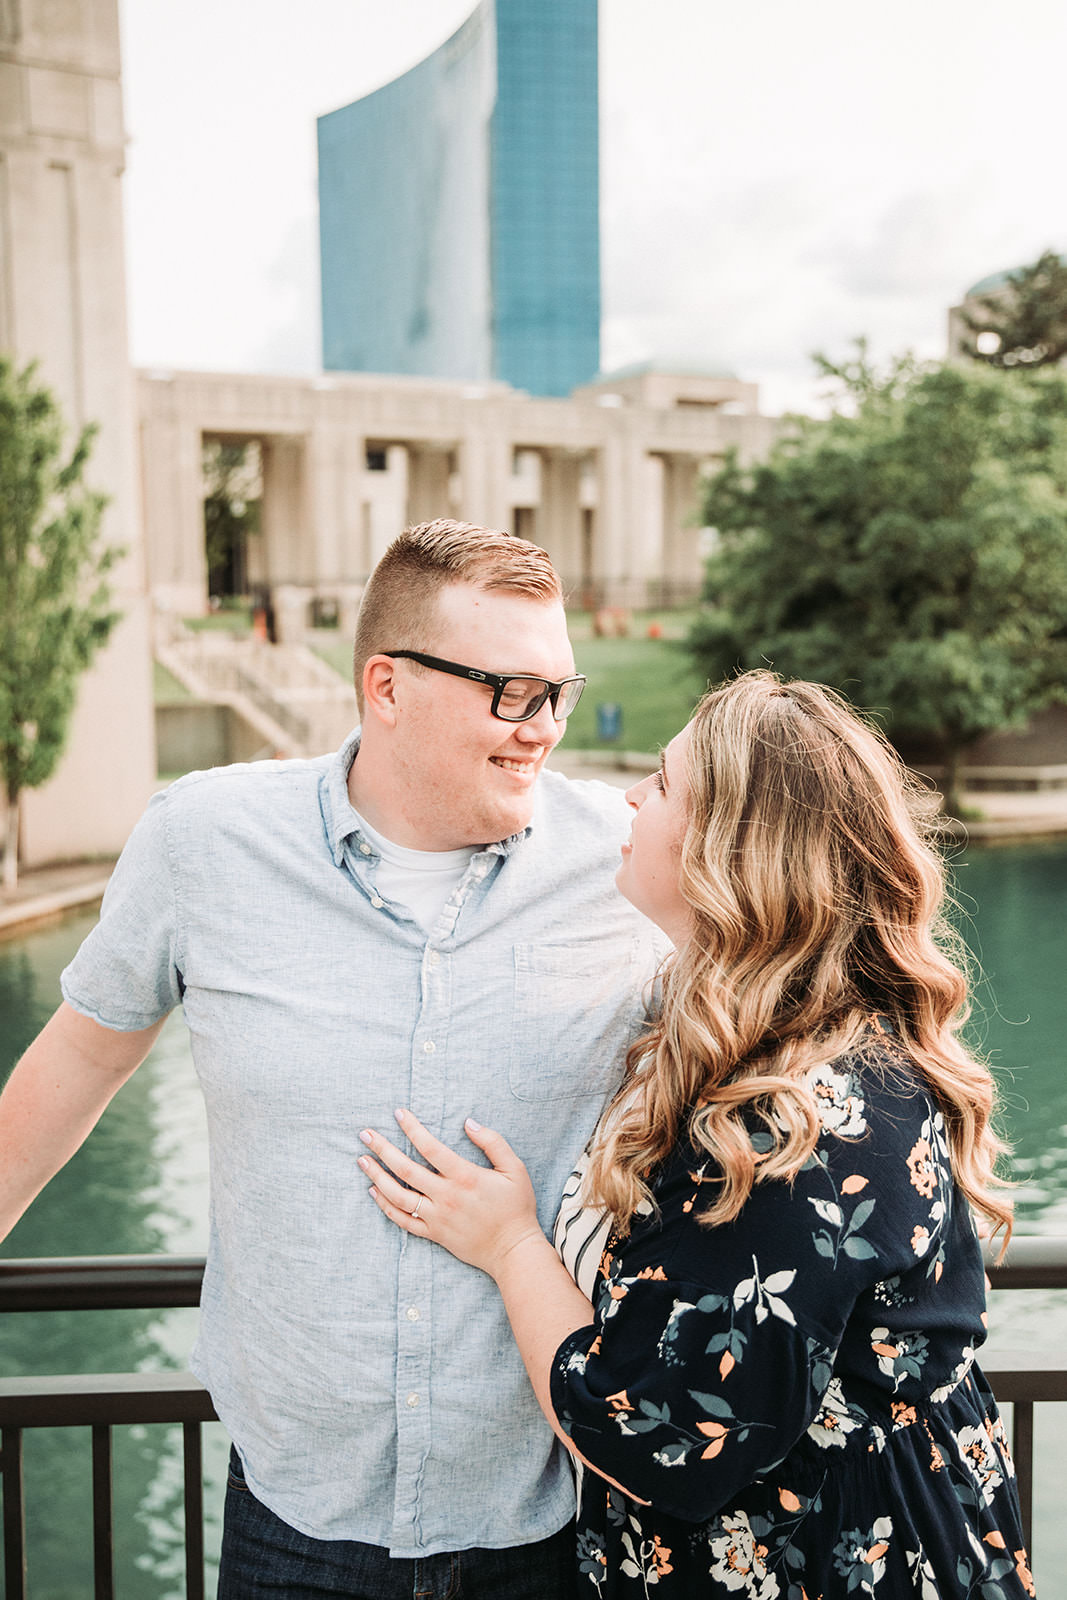 DowntownIndianapolisSpringEngagementPhotos-41.jpg